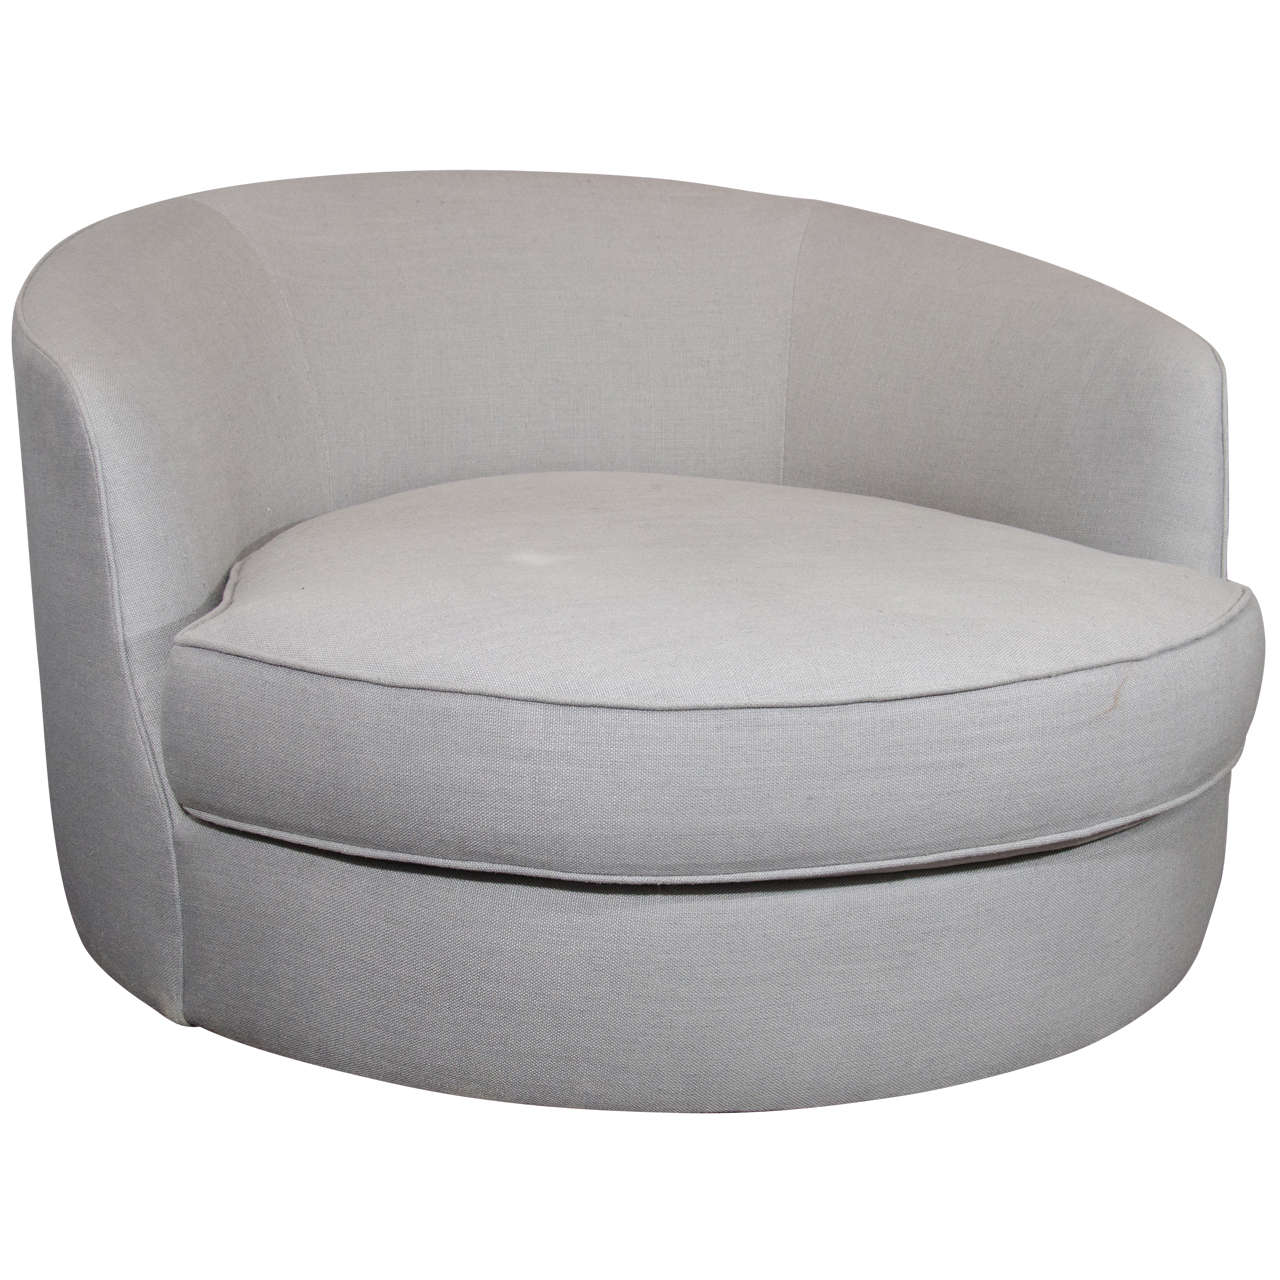 1960s Milo Baughman Tub Chair For Sale at 1stdibs